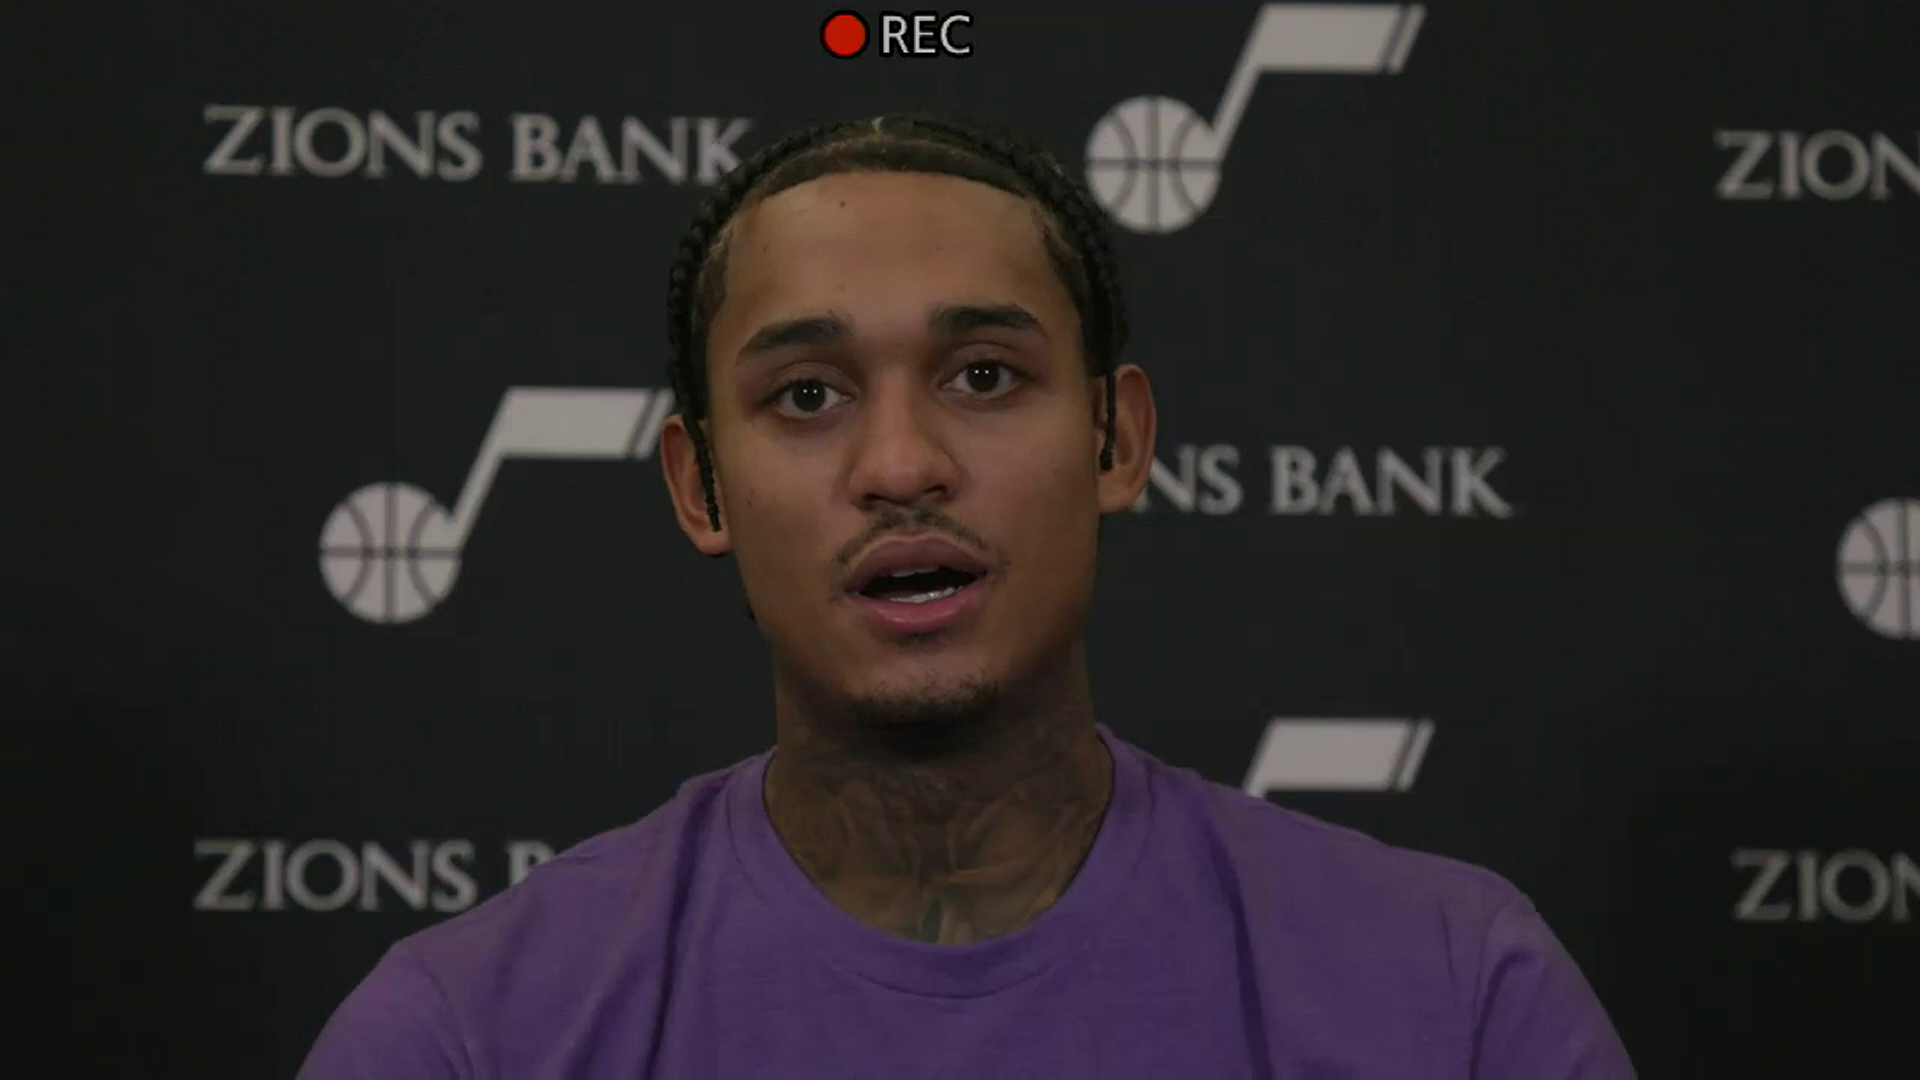 Shootaround 1.26—JC talks about facing former teammates and settling in Utah